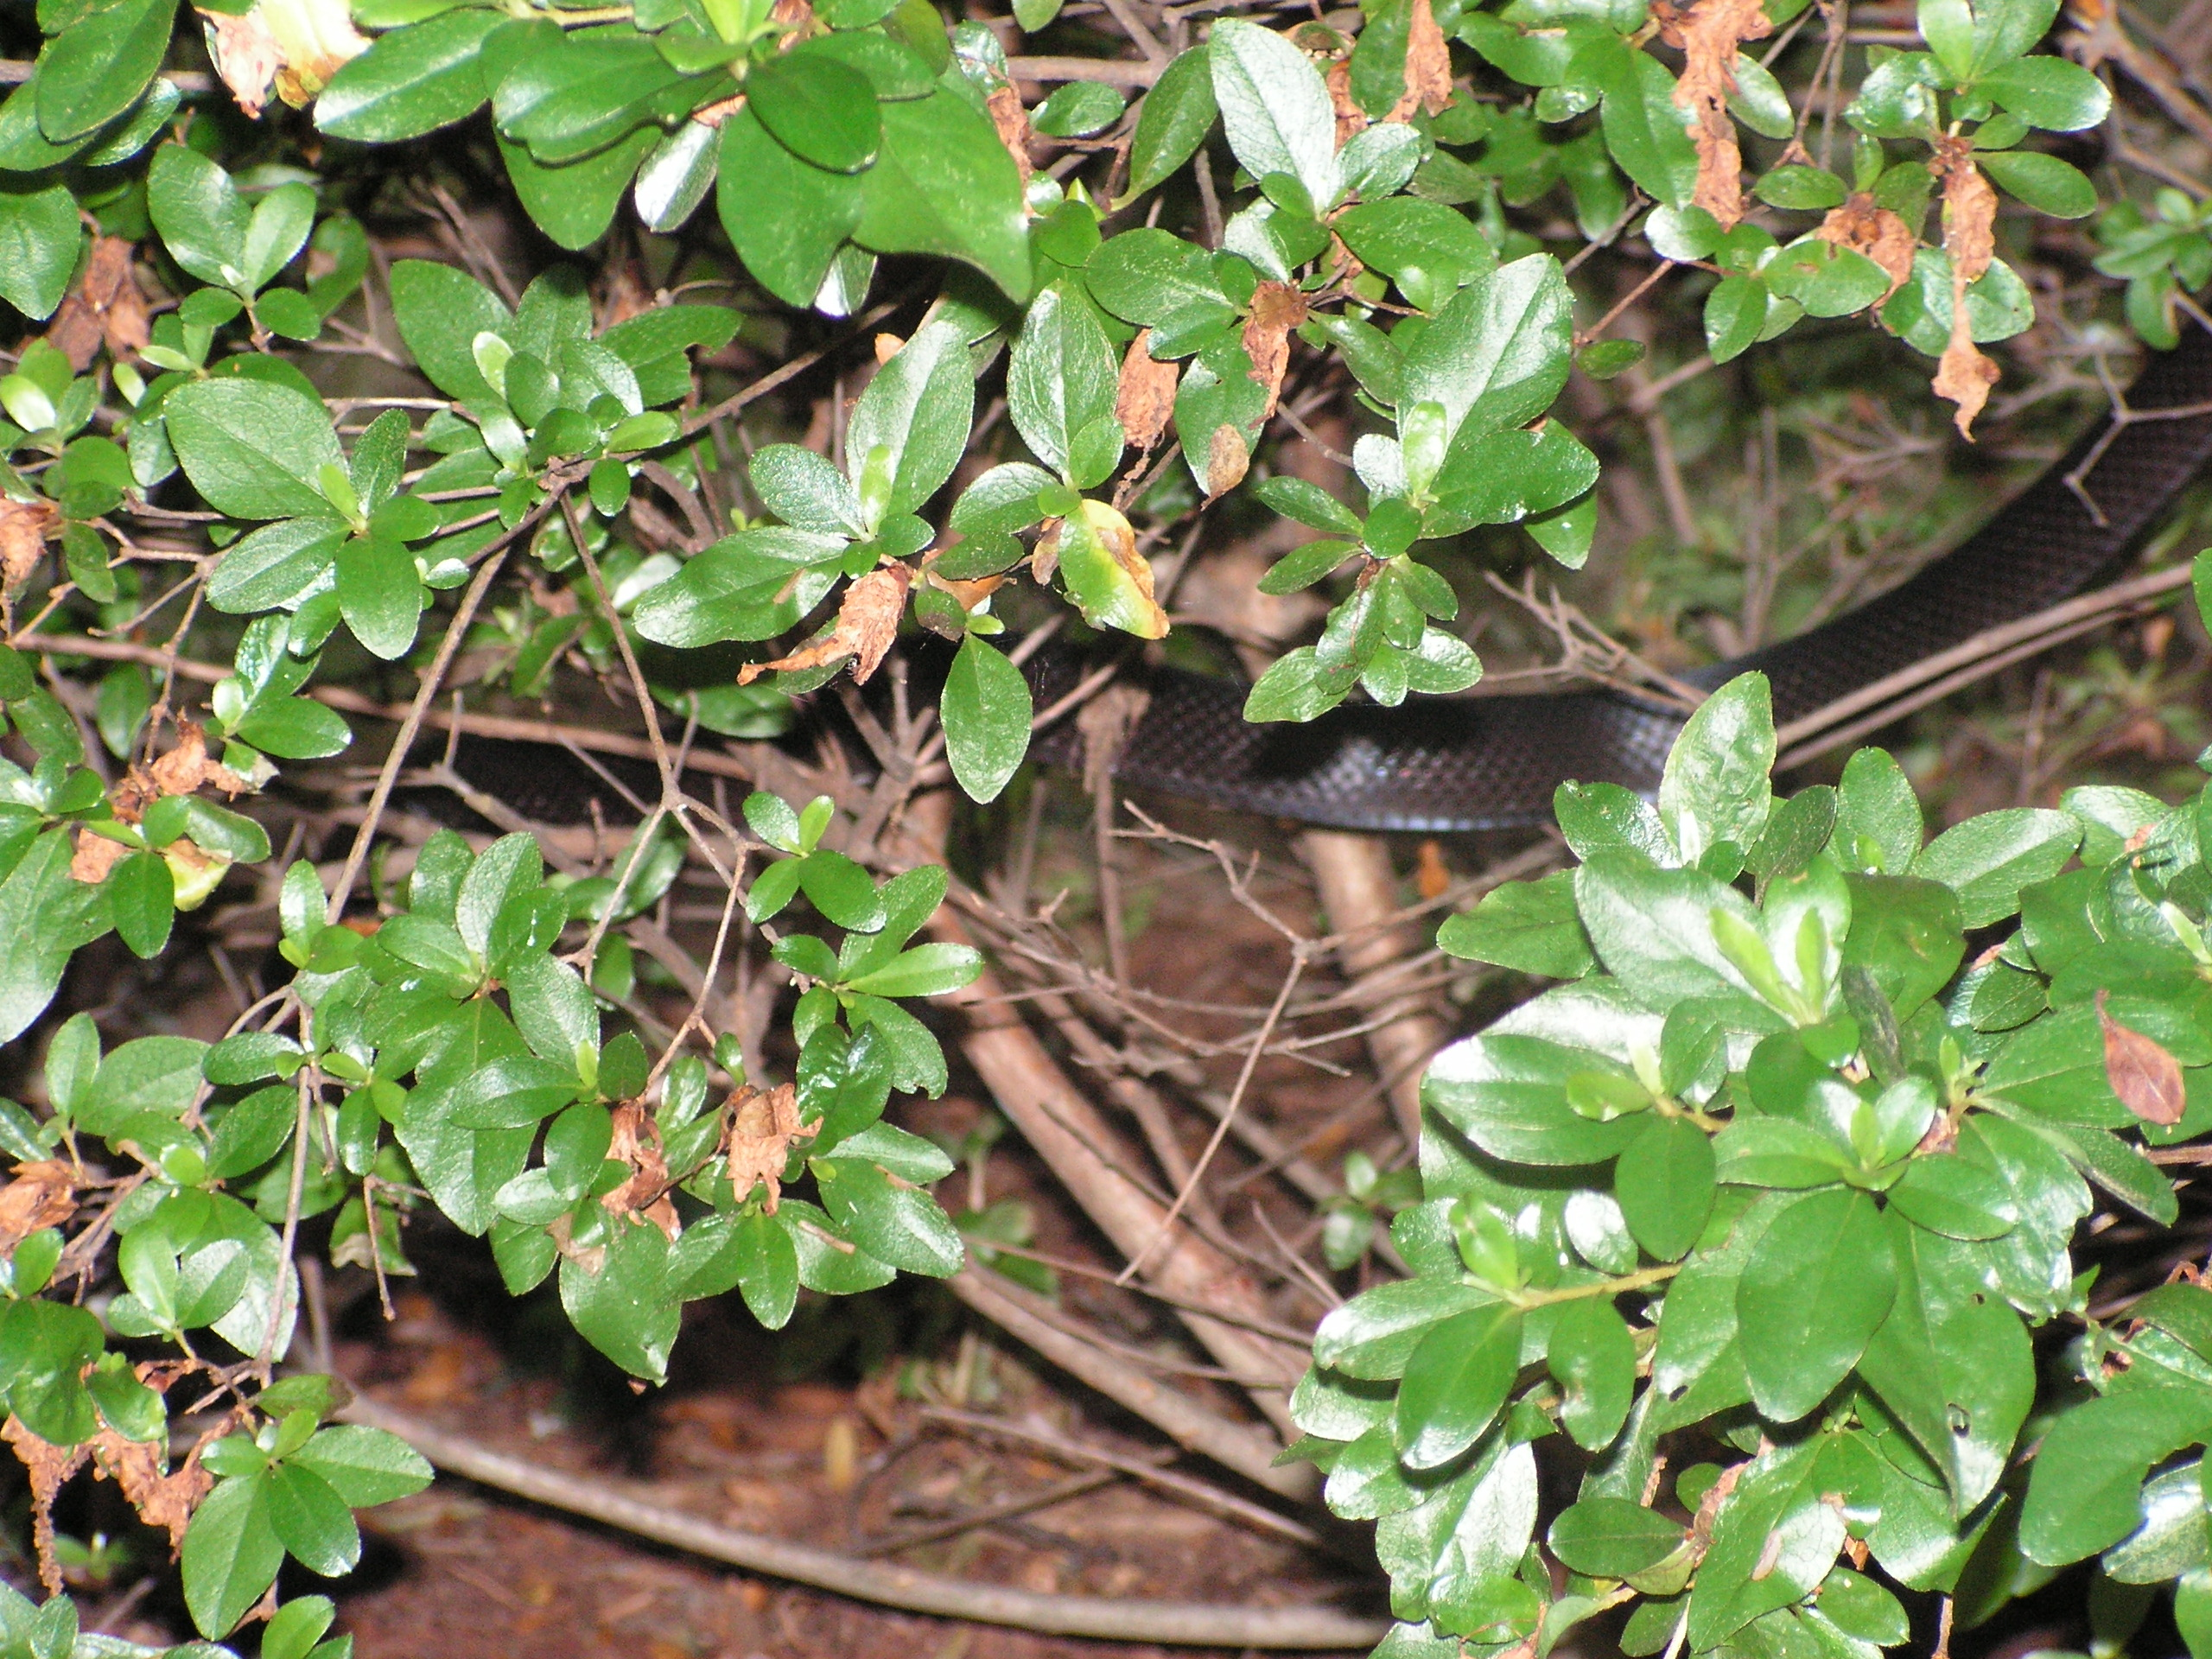 Slither in Bush